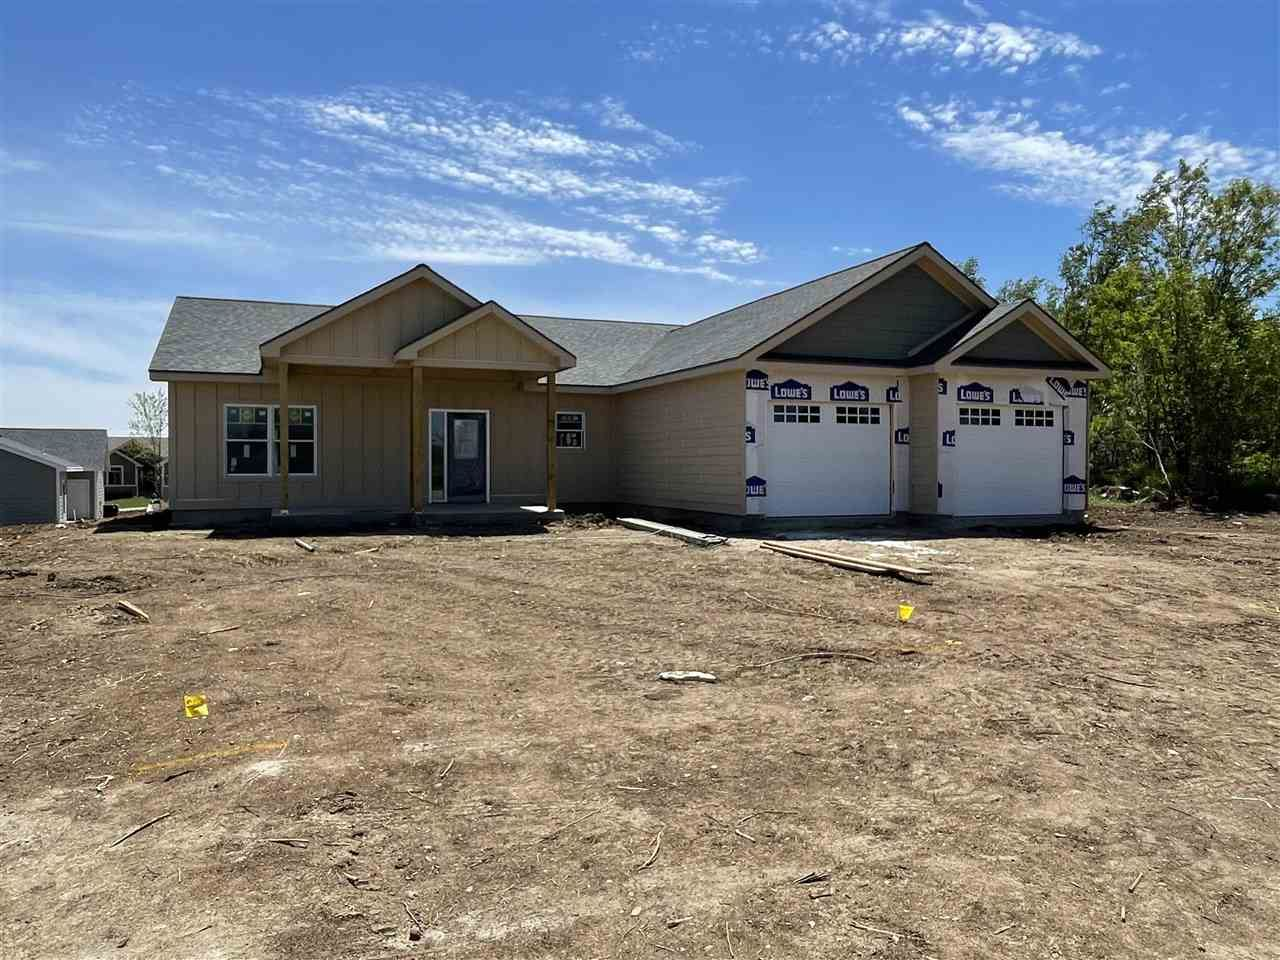 Photo of 1631 Saddle Drive, Junction City, KS 66441 (MLS # 20211358)